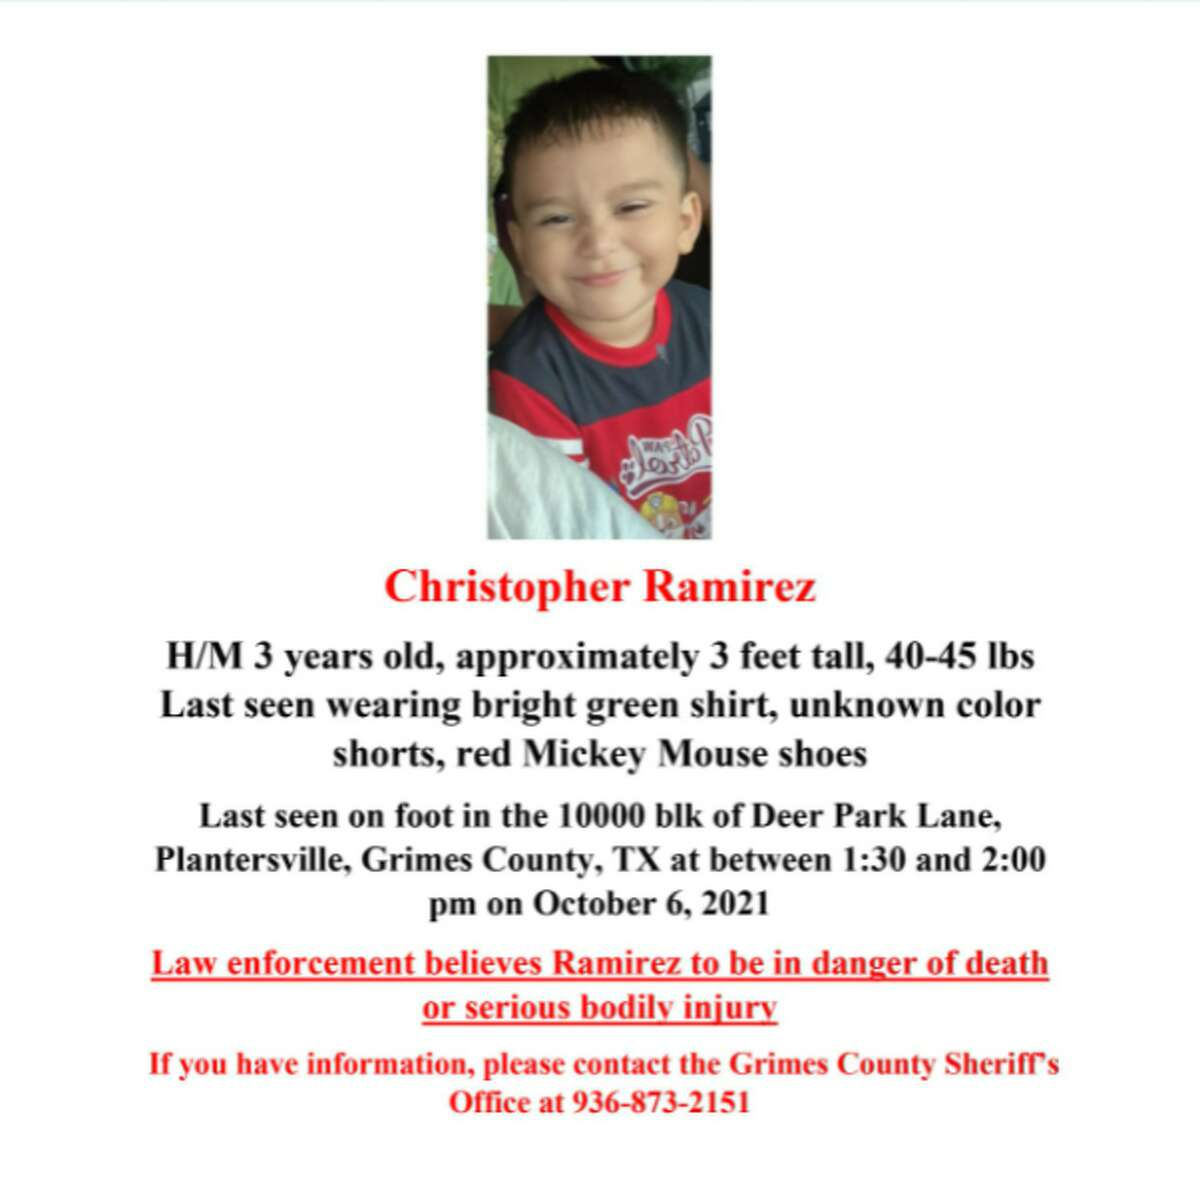 Police are looking for 3-year-old Christopher Ramirez who went missing in Plantersville on Oct. 6, 2021.